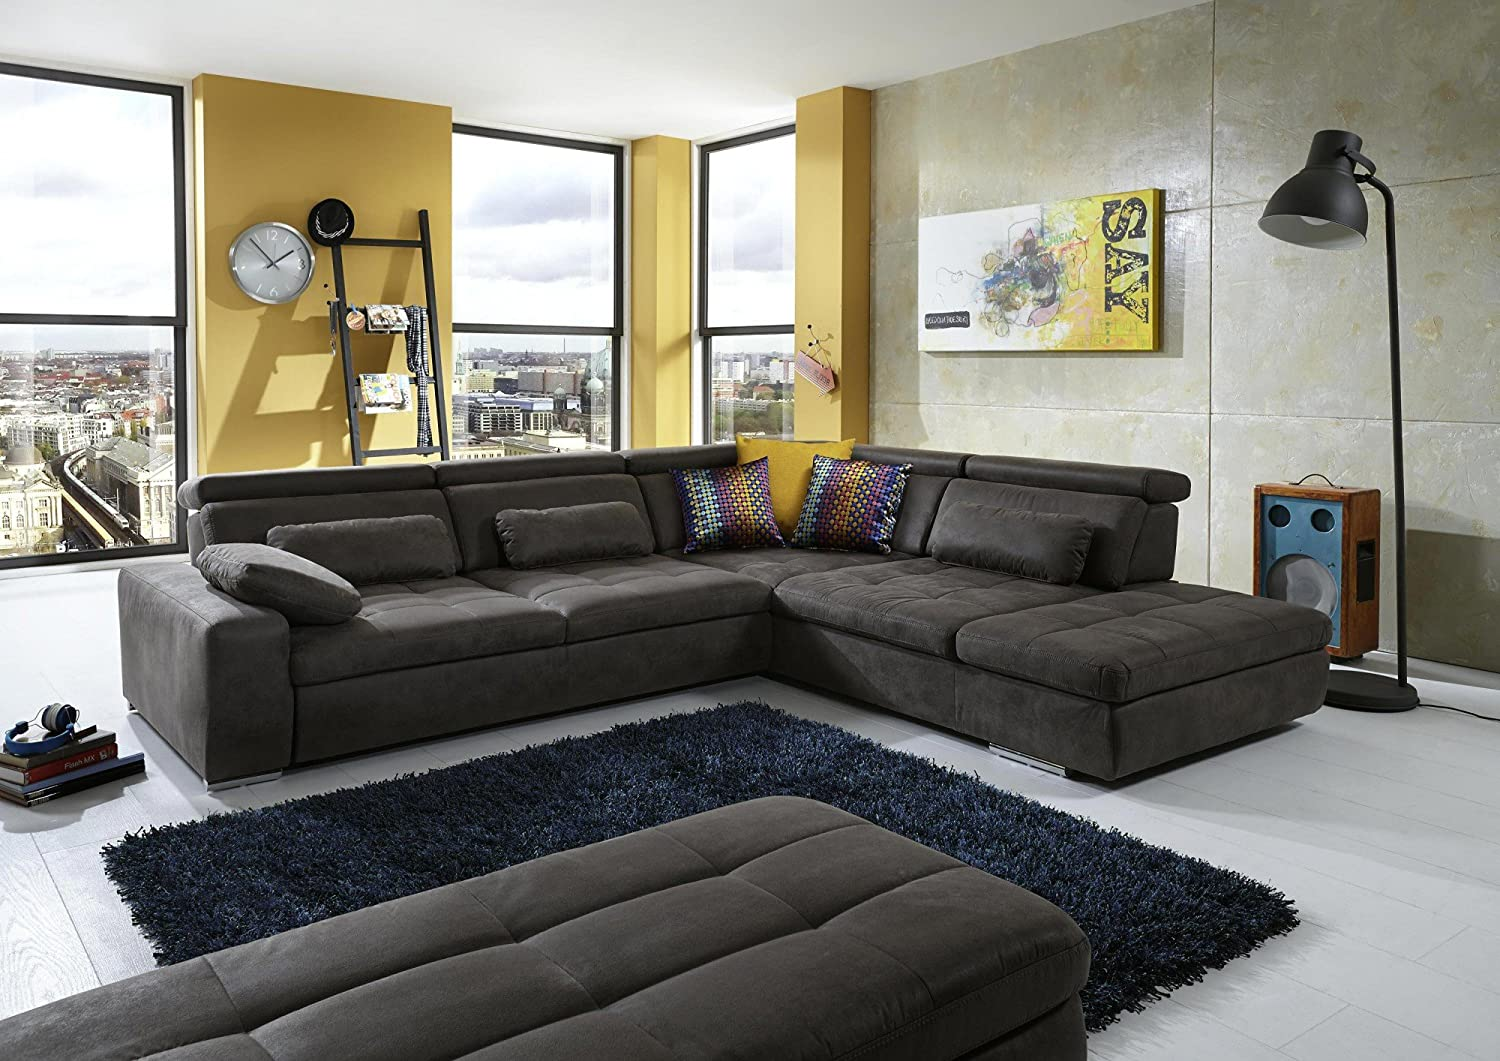 Loungesofa Sofagarnitur Sofa Couchgarnitur Couch Wohnlandschaft Look